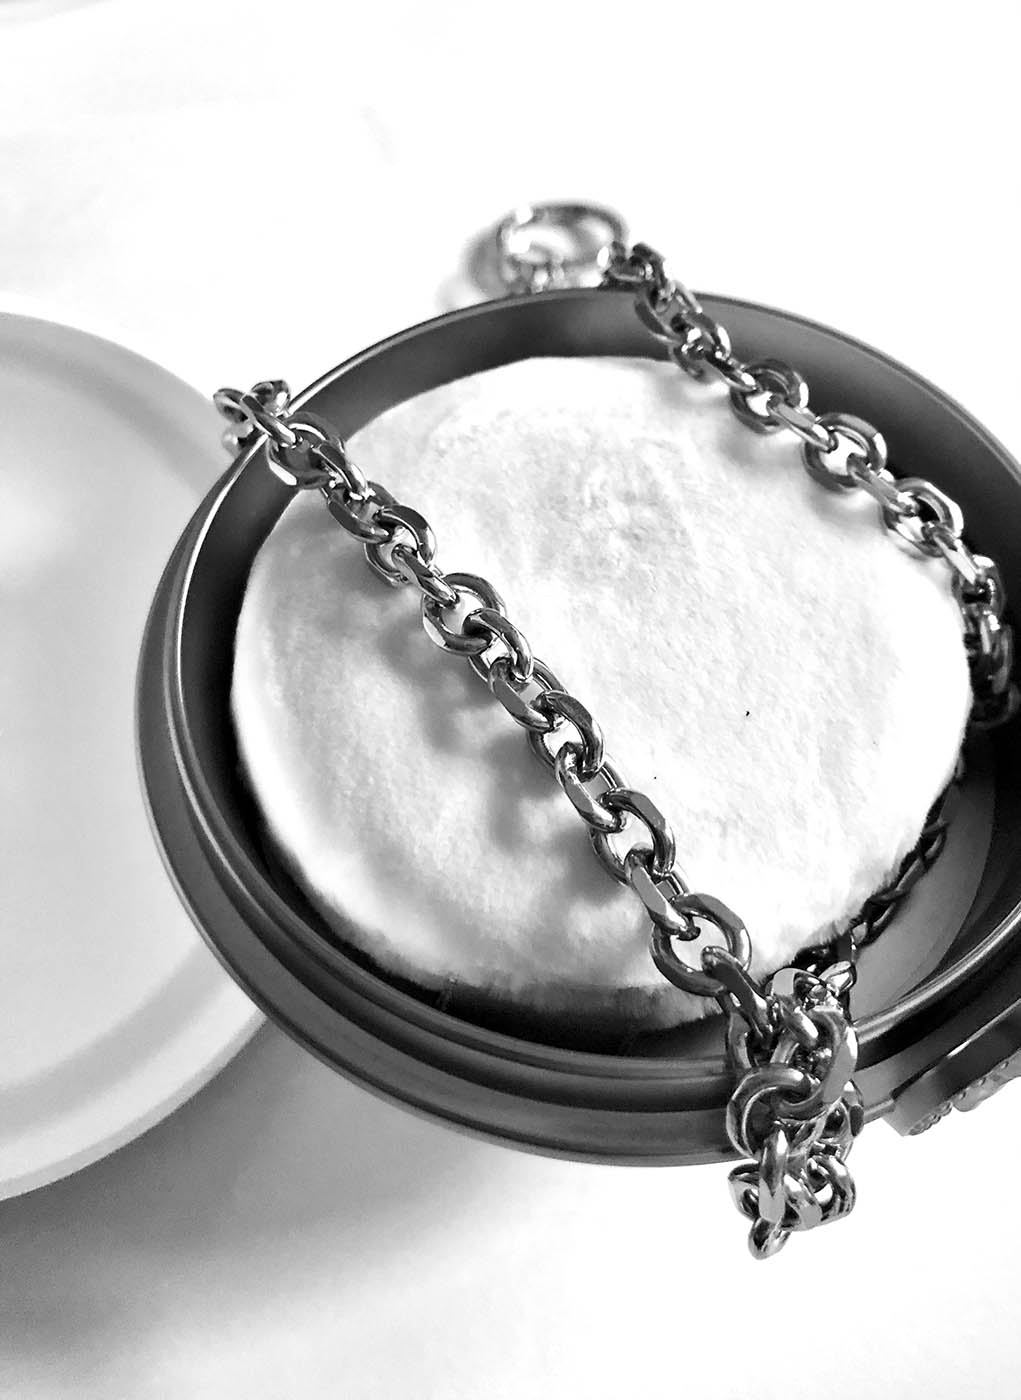 Black and white photo of makeup case depicted as ball and chain.